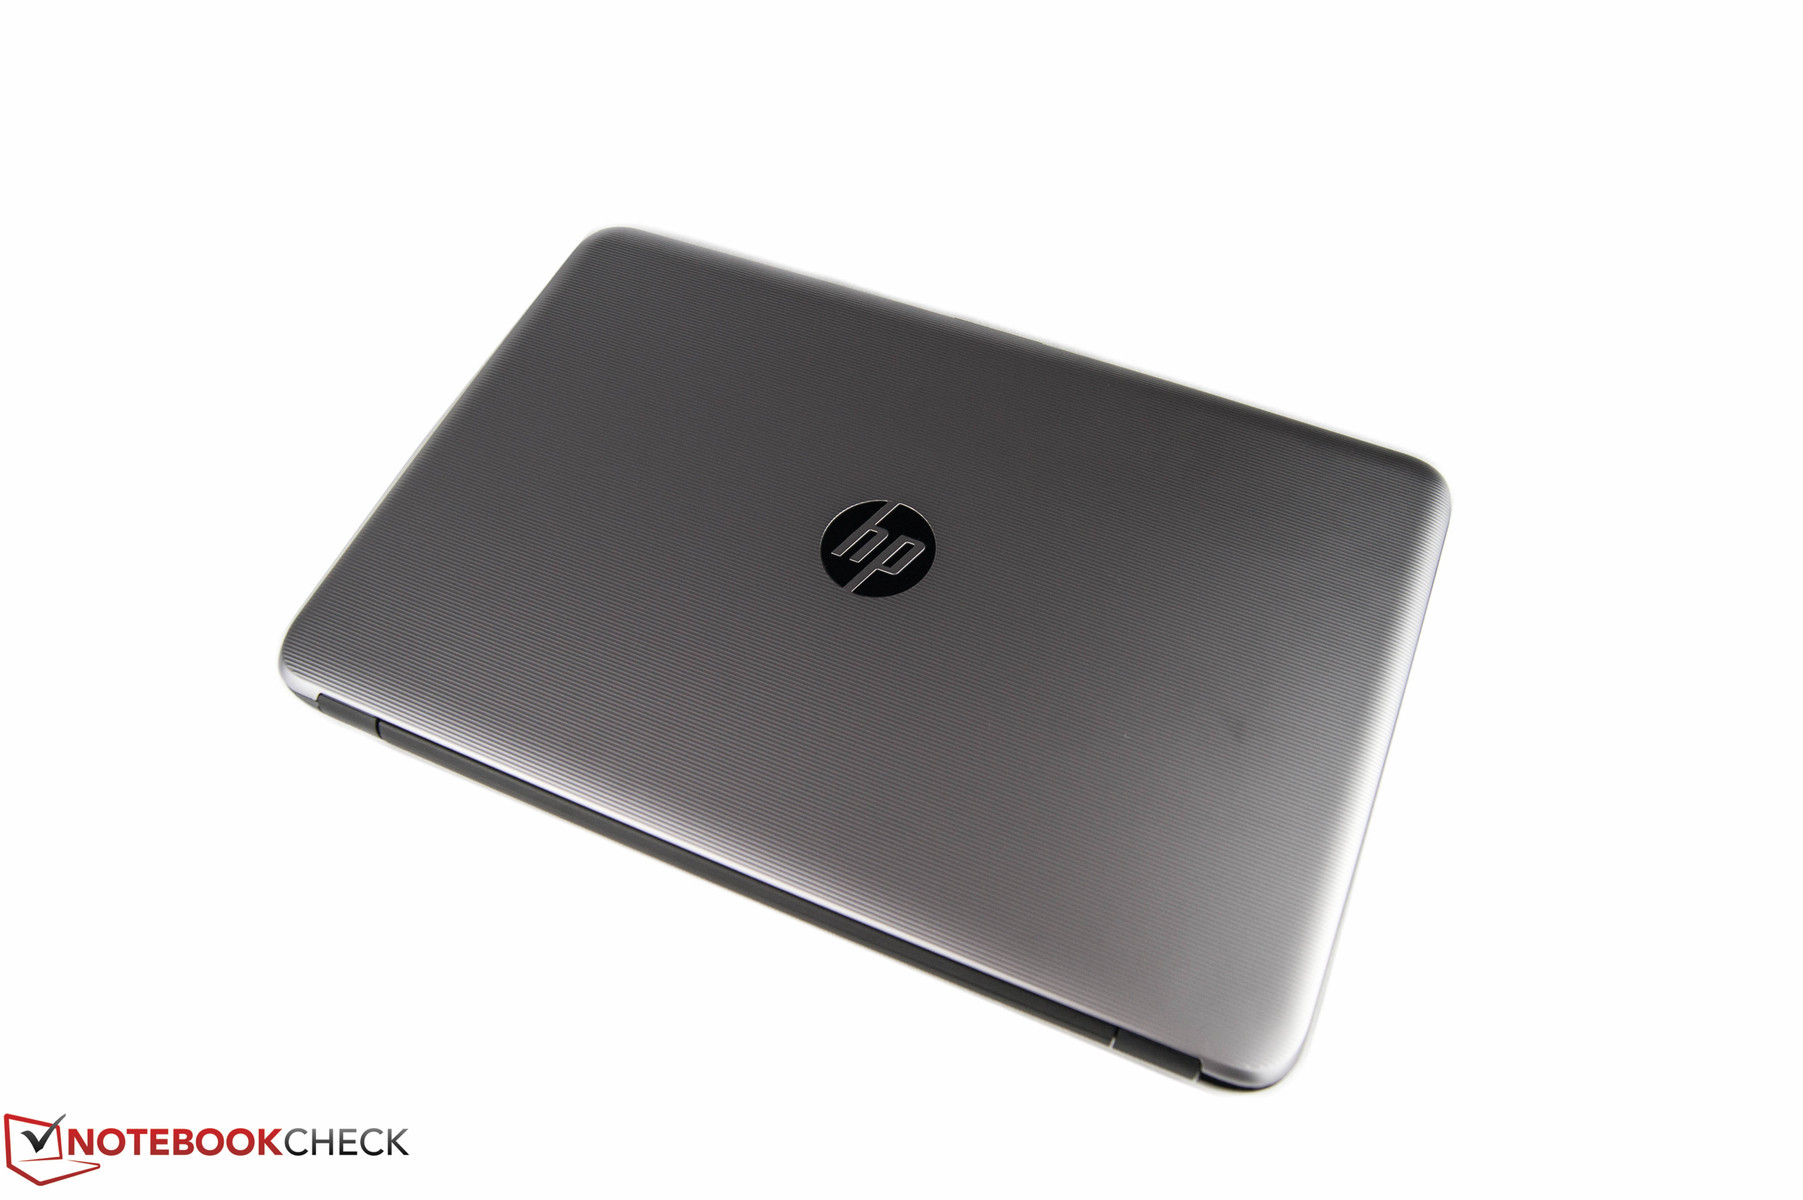 Courte critique du pc portable hp 250 g5 sp x0n33ea notebookcheck.fr